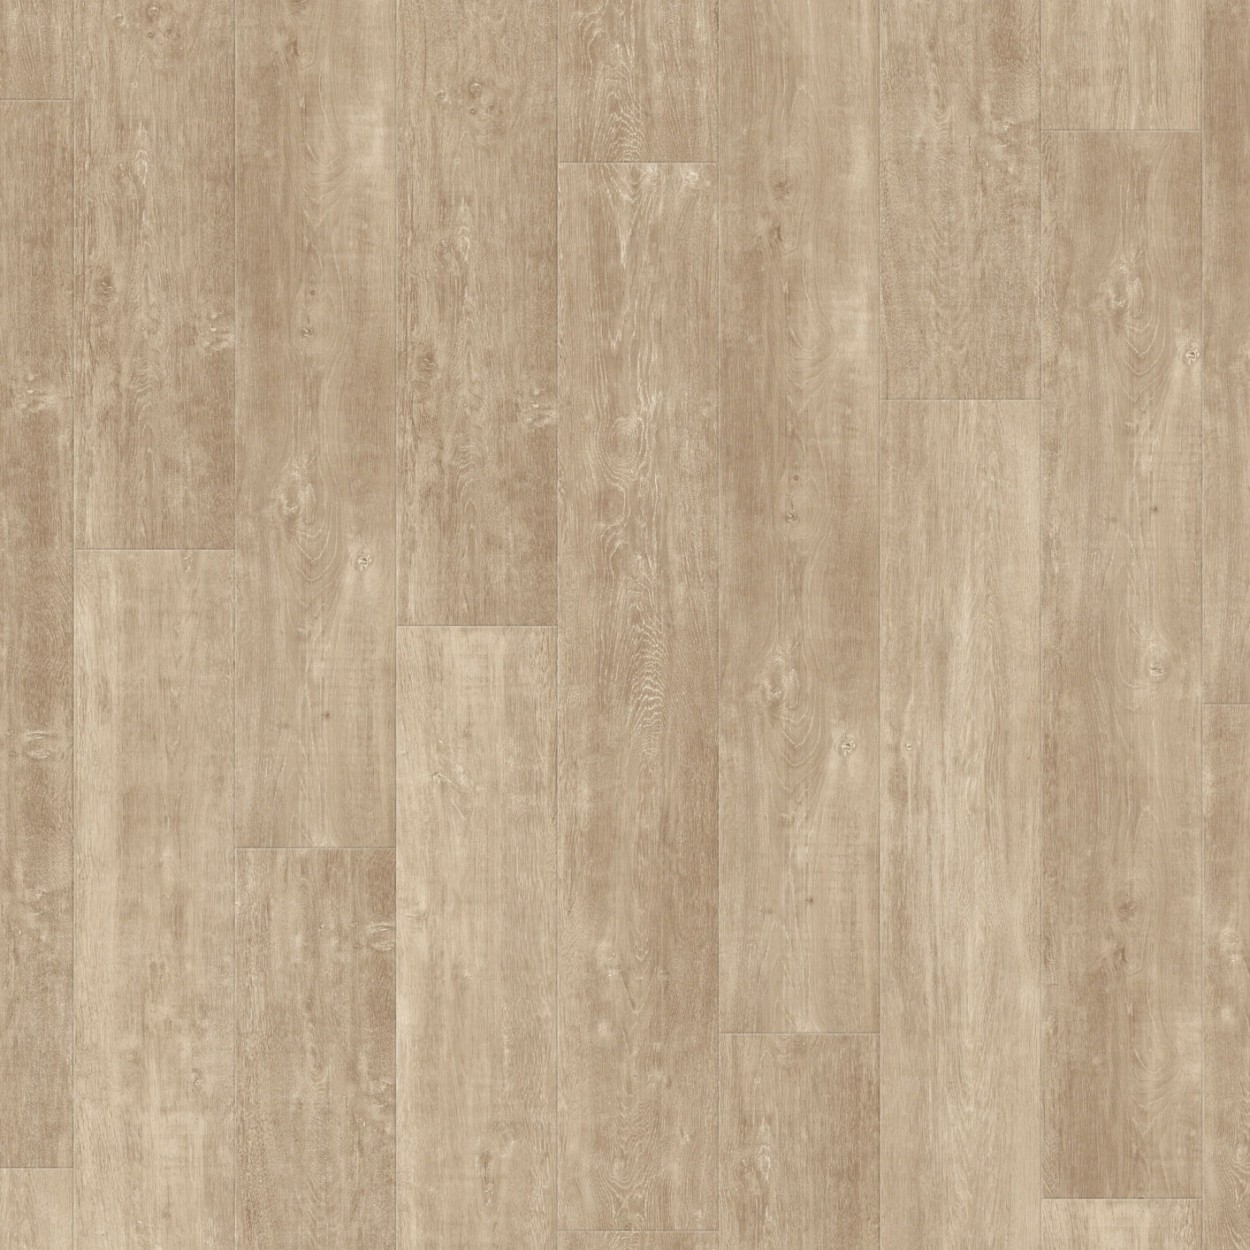 GERFLOR CREATIONS 0069 MANSFIELD NATURAL